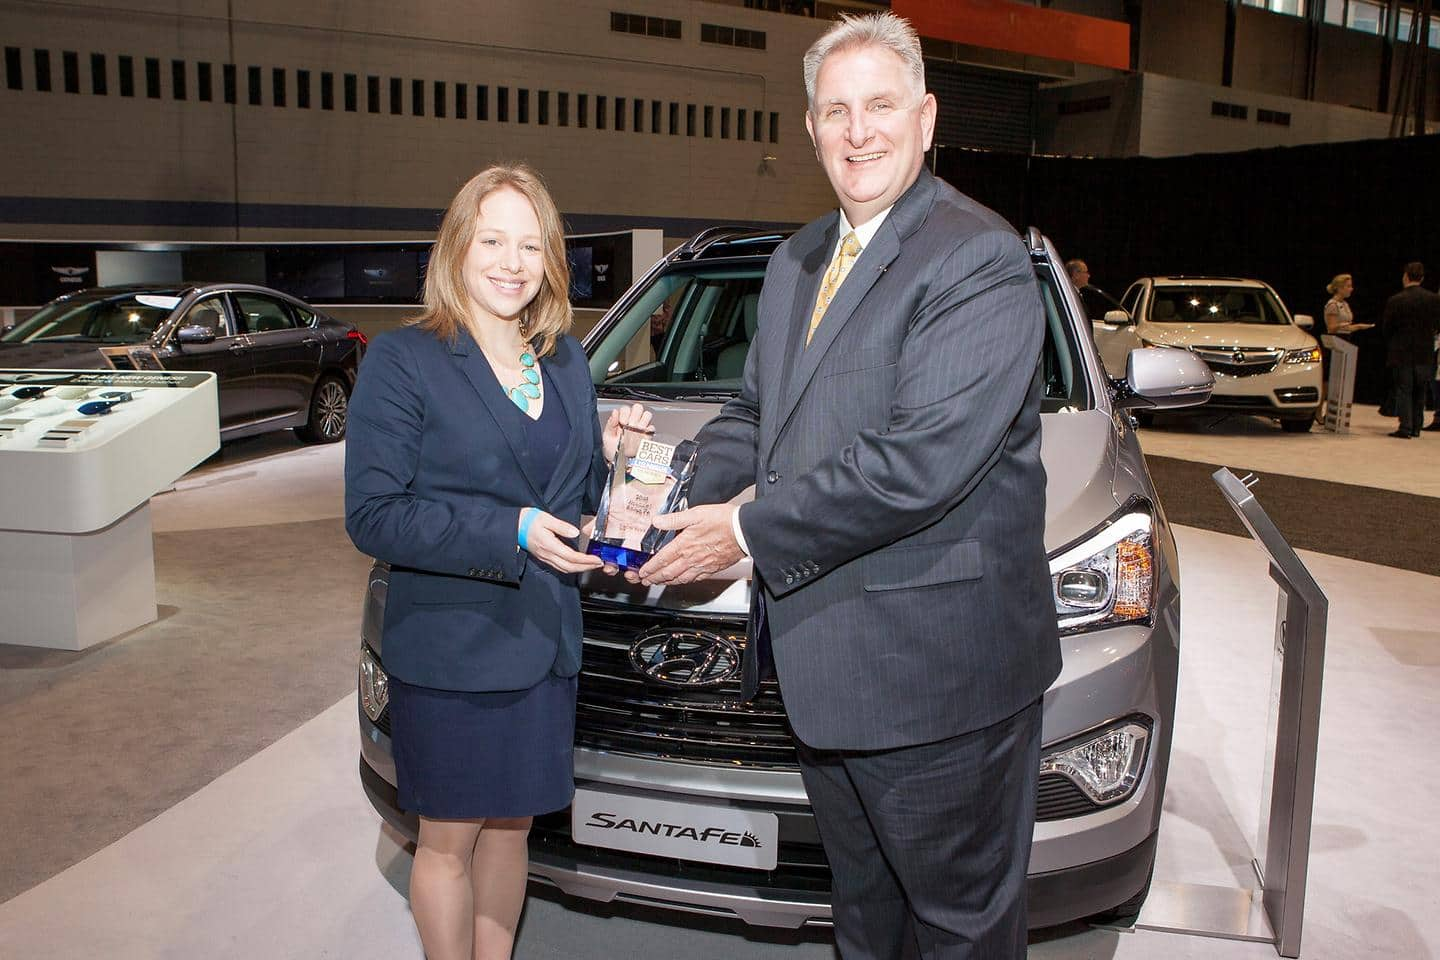 2015 Hyundai Sonata And 2015 Santa Fe Named Best Cars for the Money by U.S. News & World Report